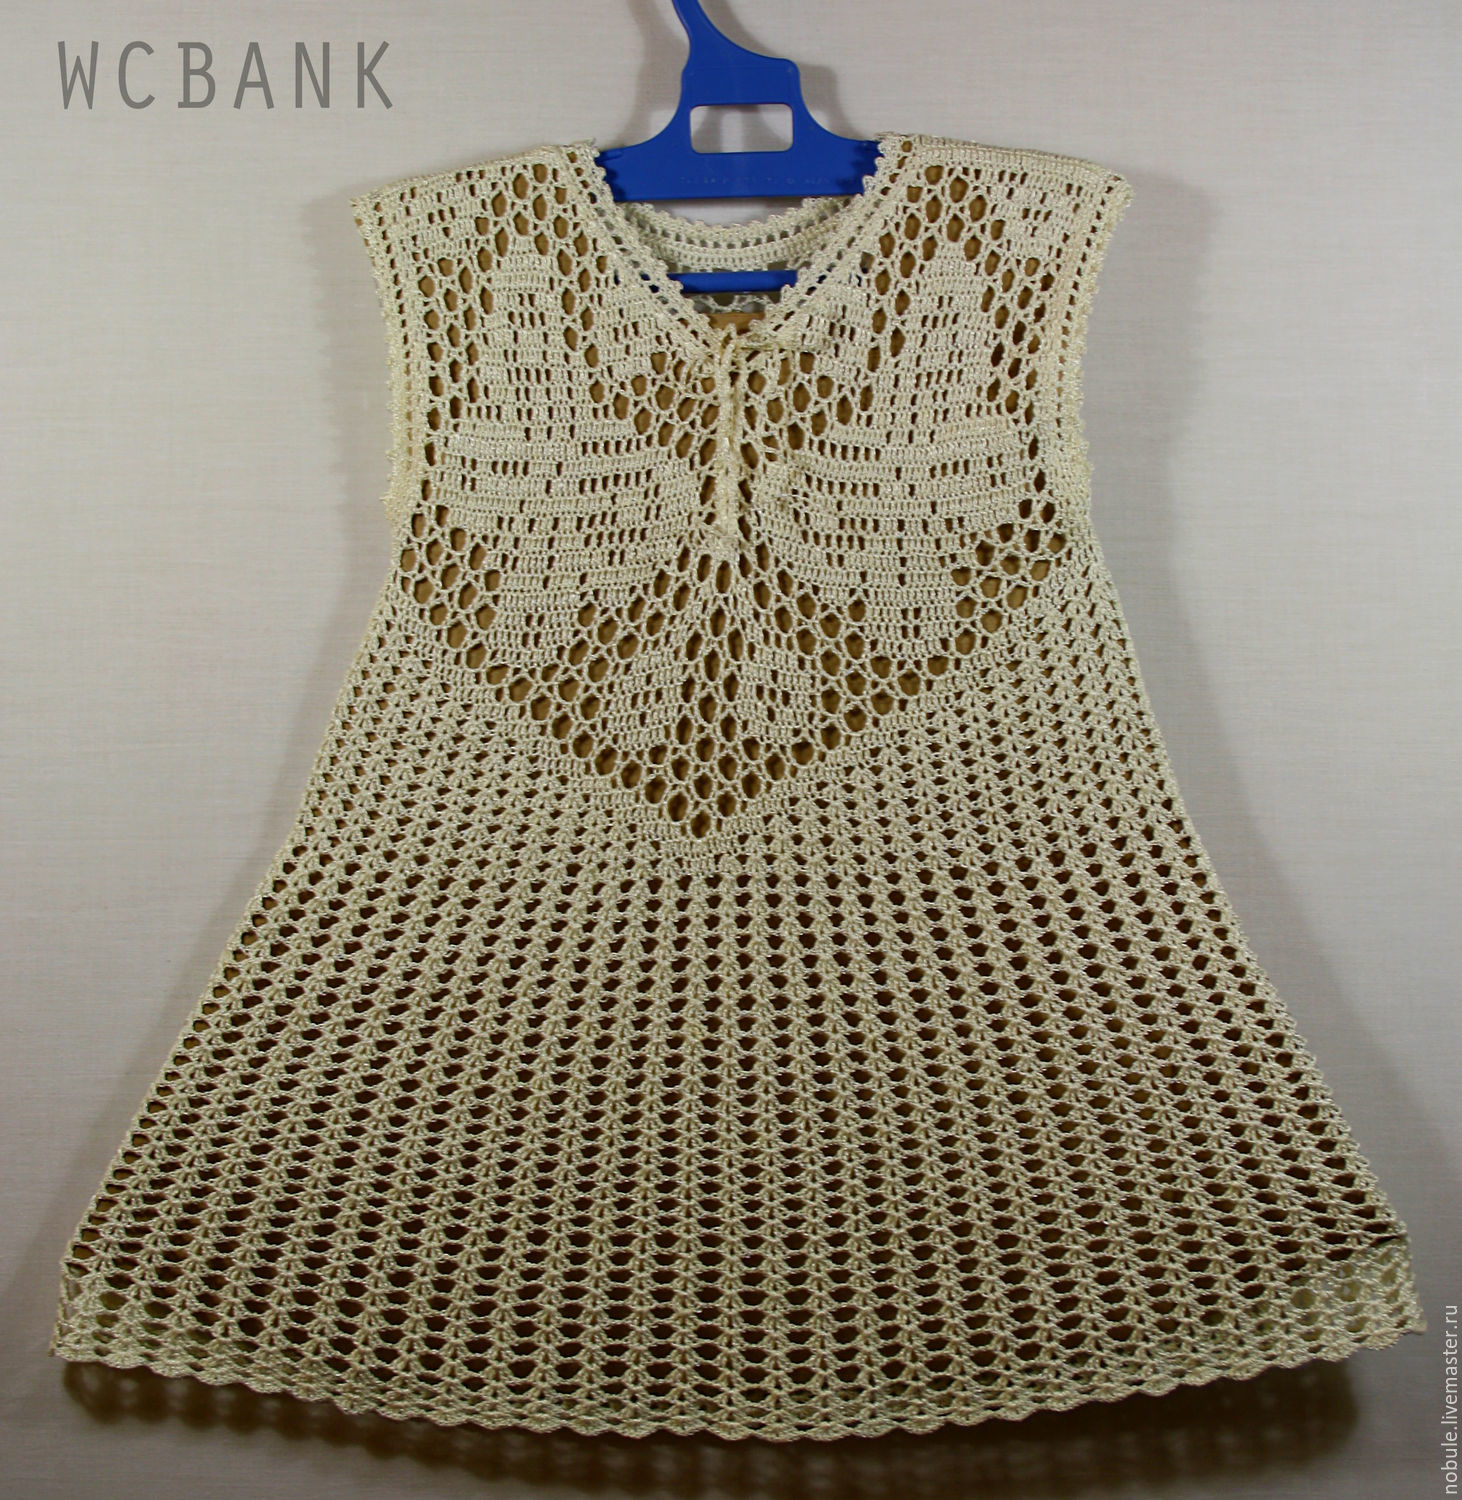 Crochet Baby Dress Patterns For Summer For Girl 3 4 Years Shop